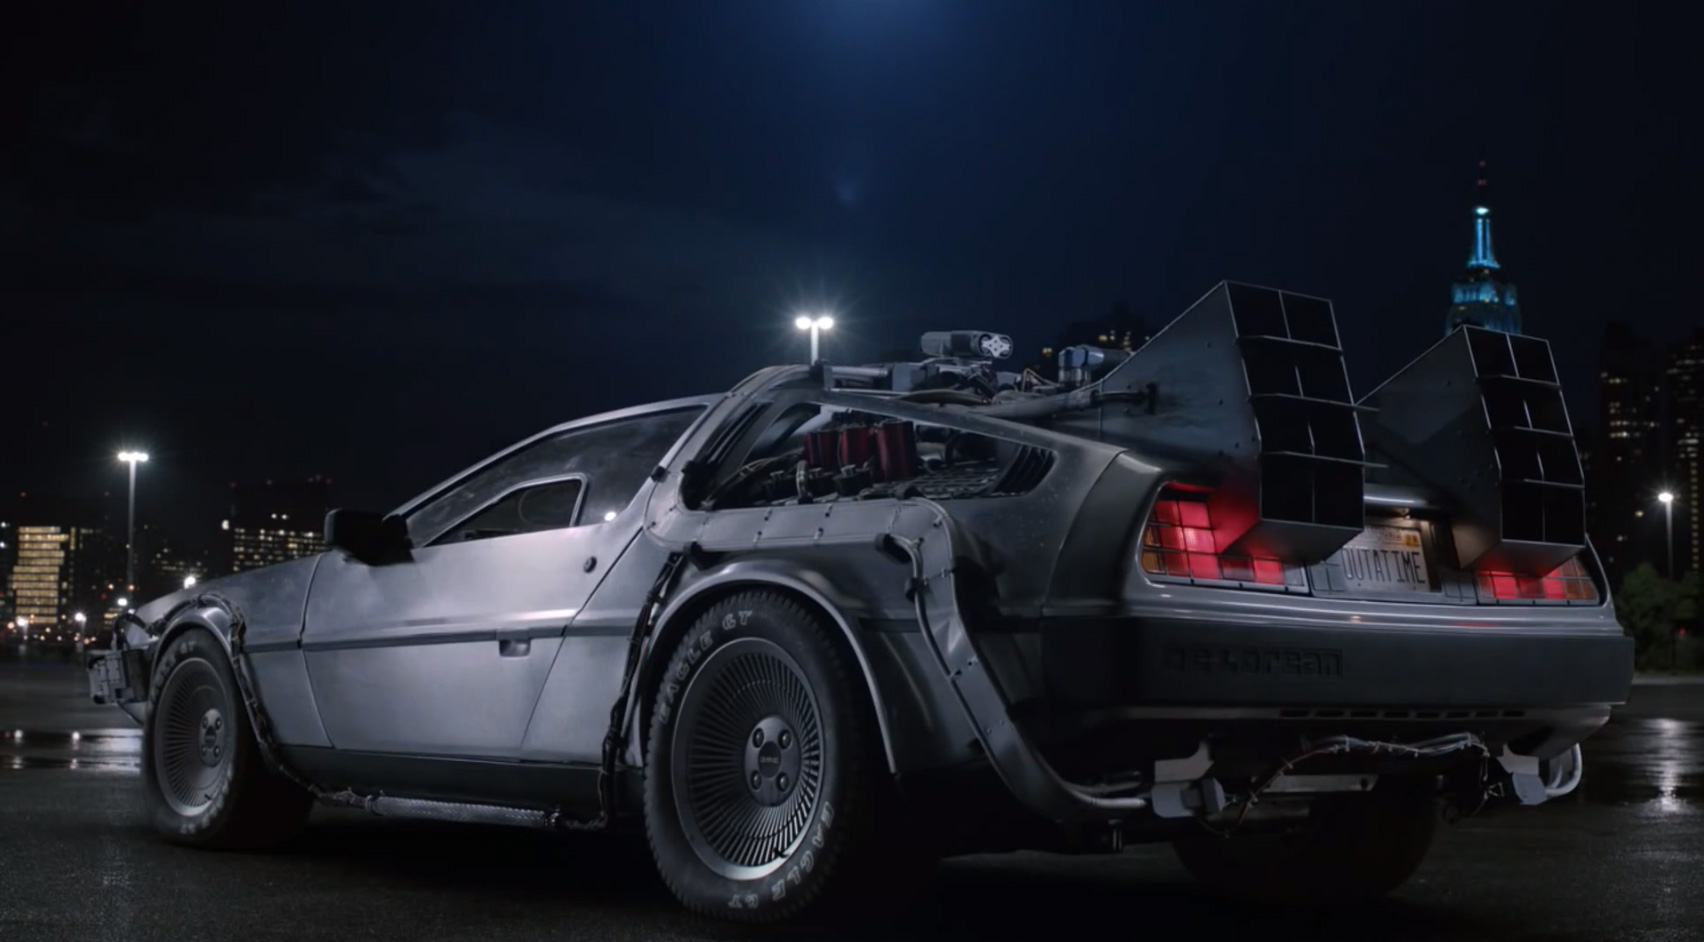 GE Uses Back To The Future DeLorean In A Commercial To